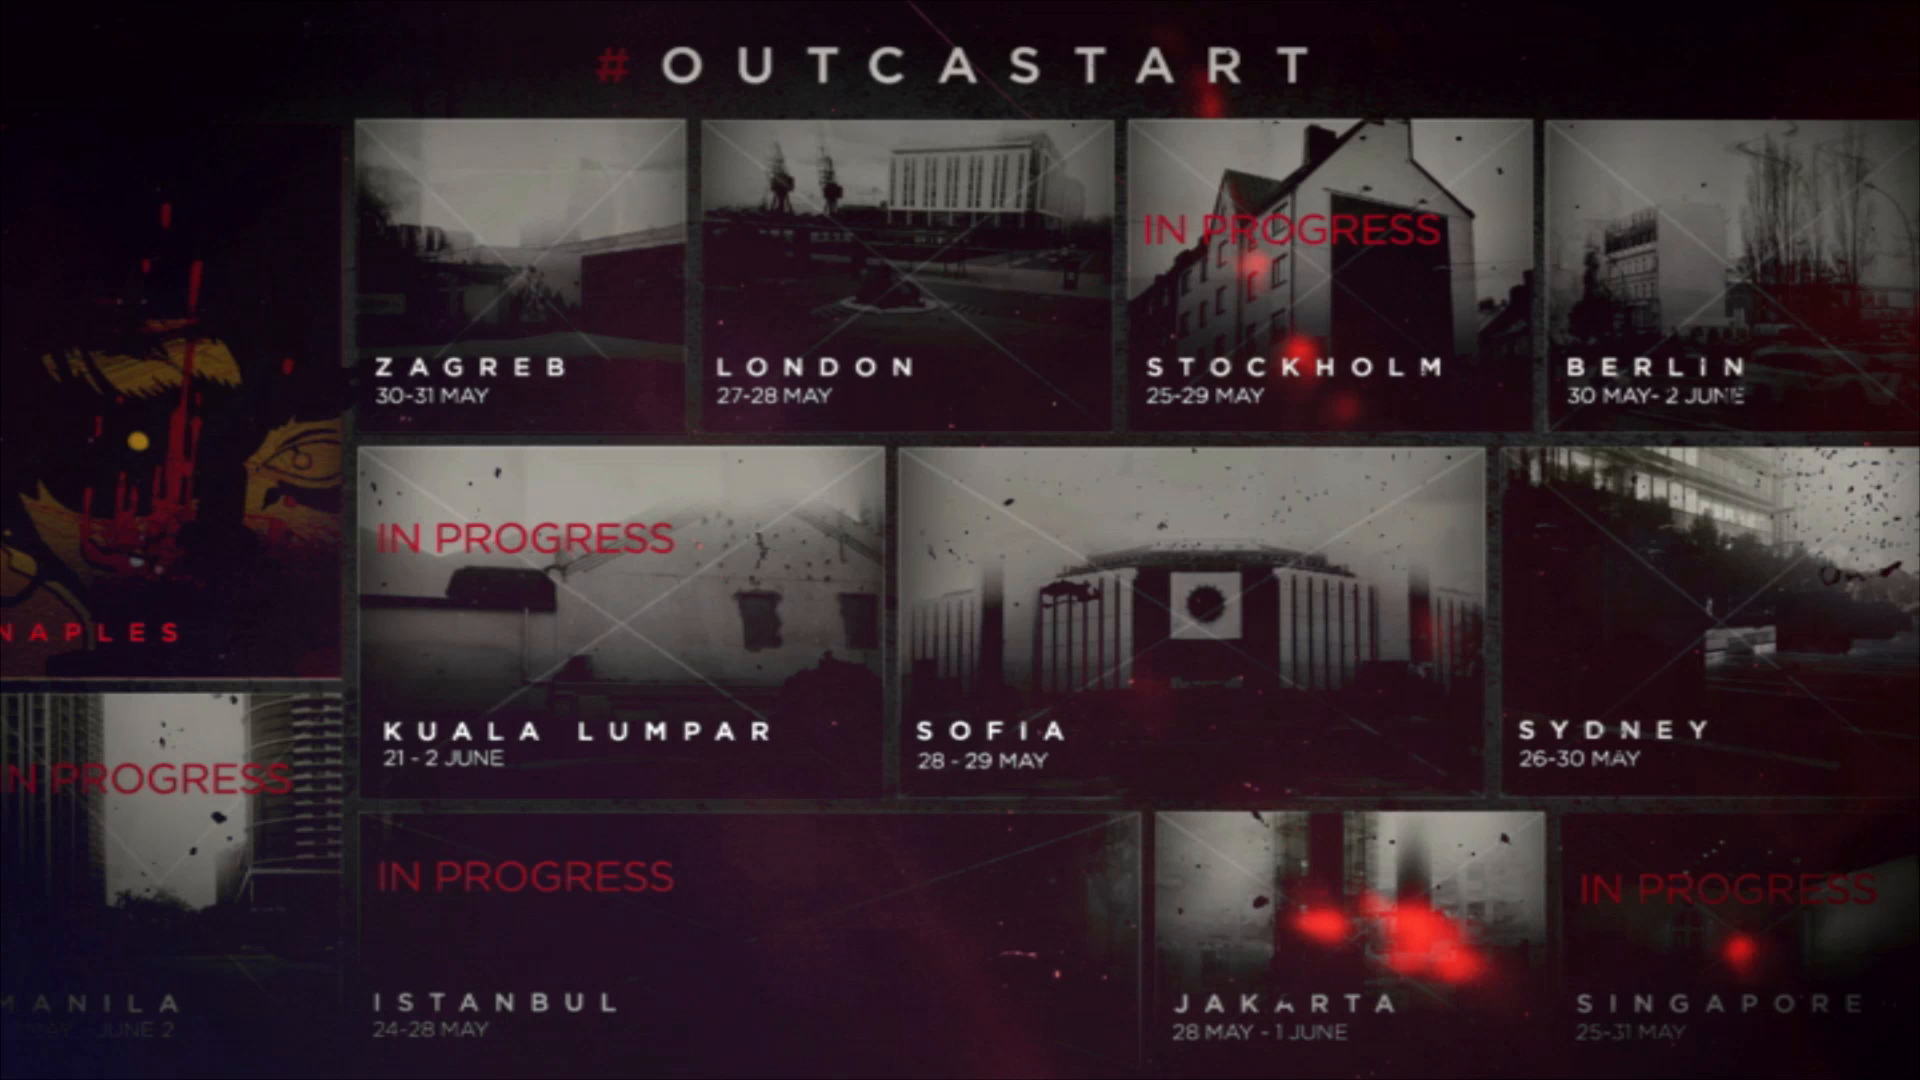 Thumbnail for Outcast Art